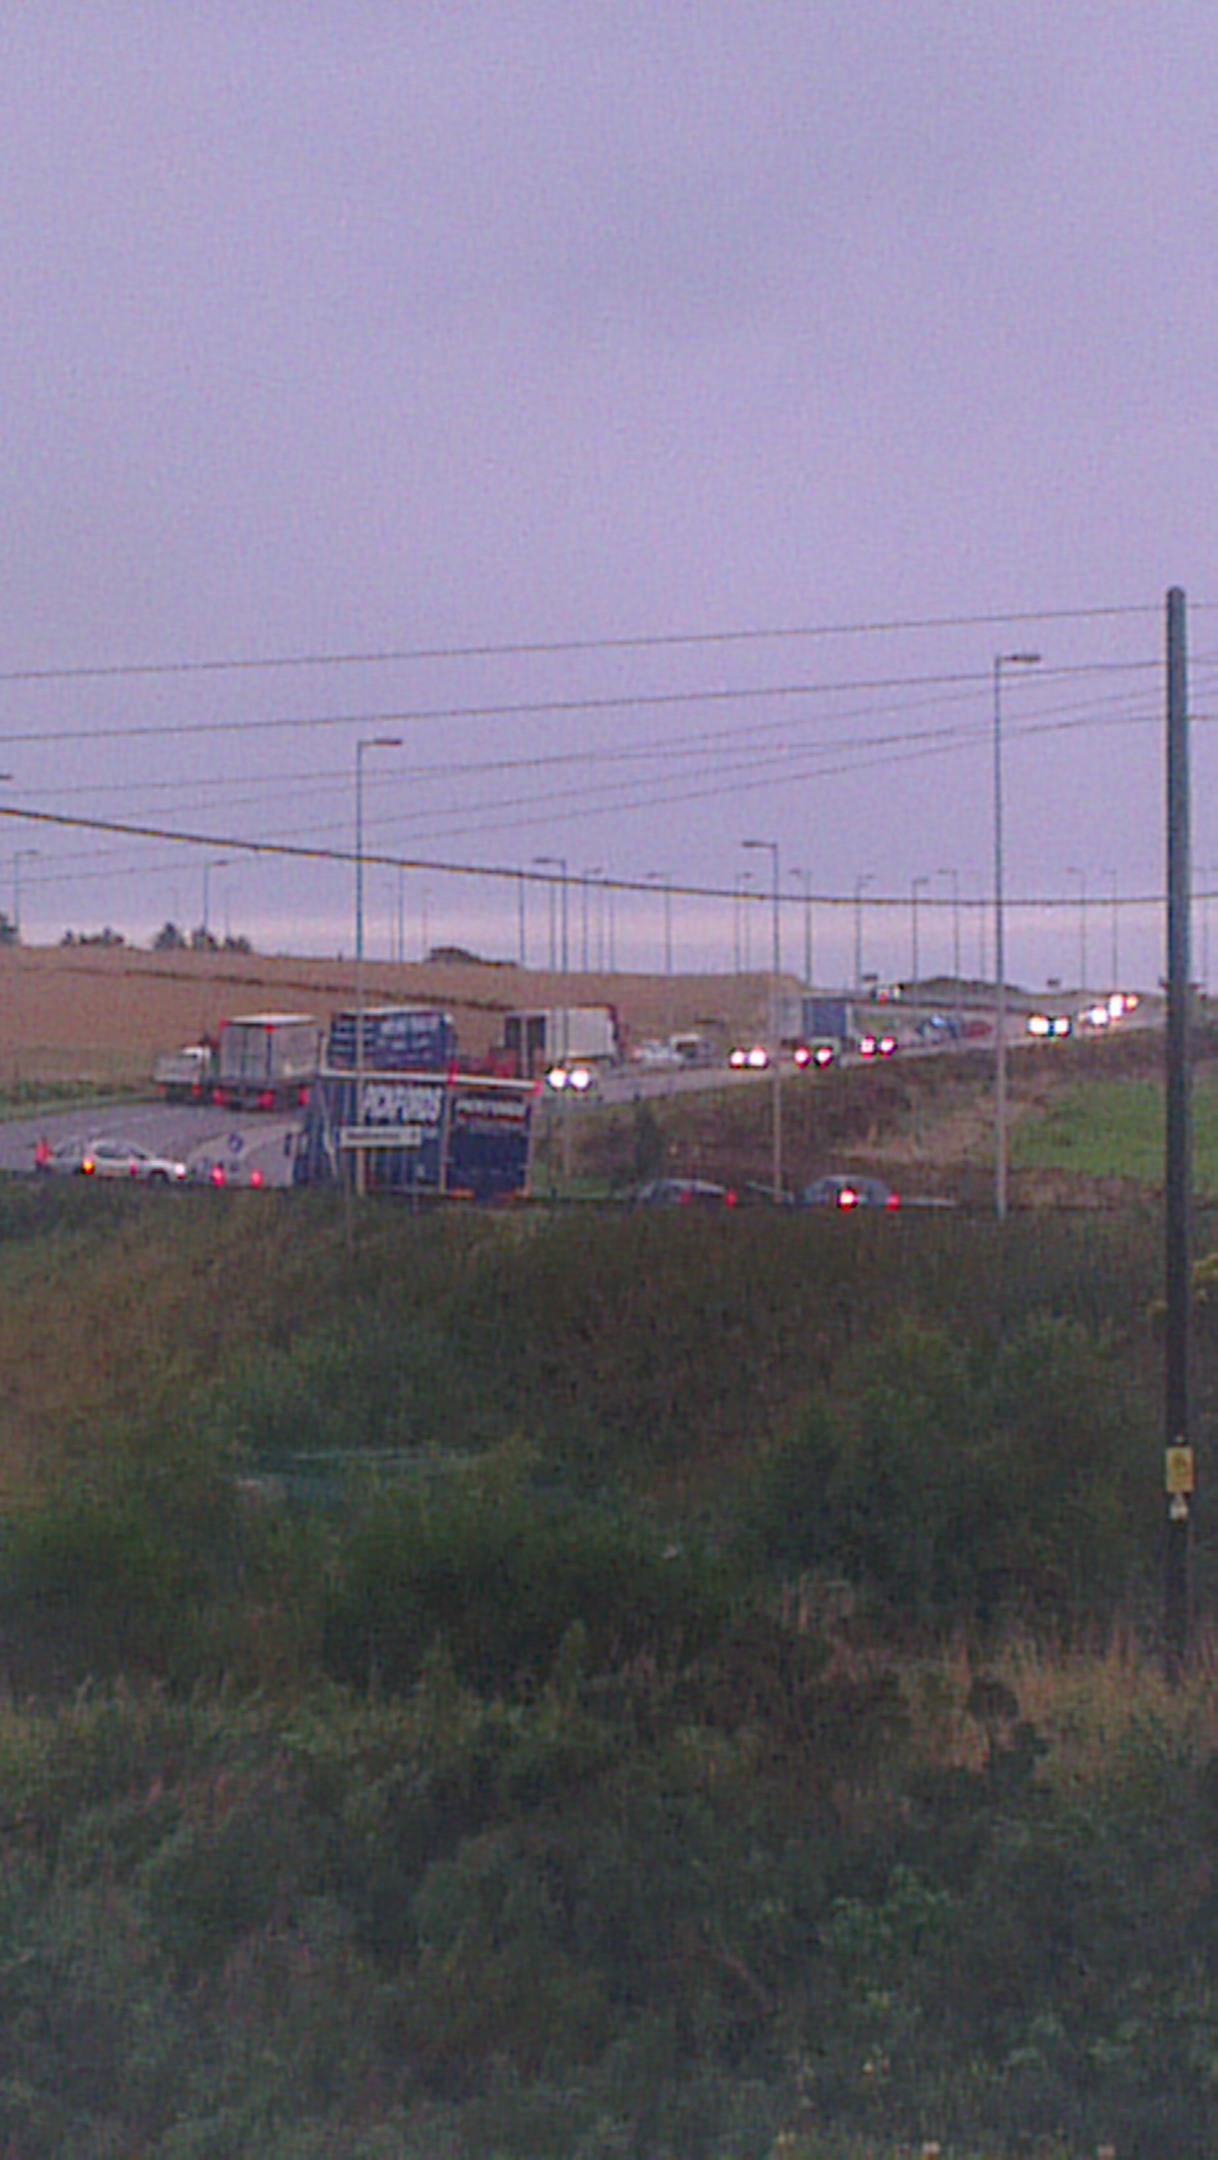 Queues forming on the A90 after the crash